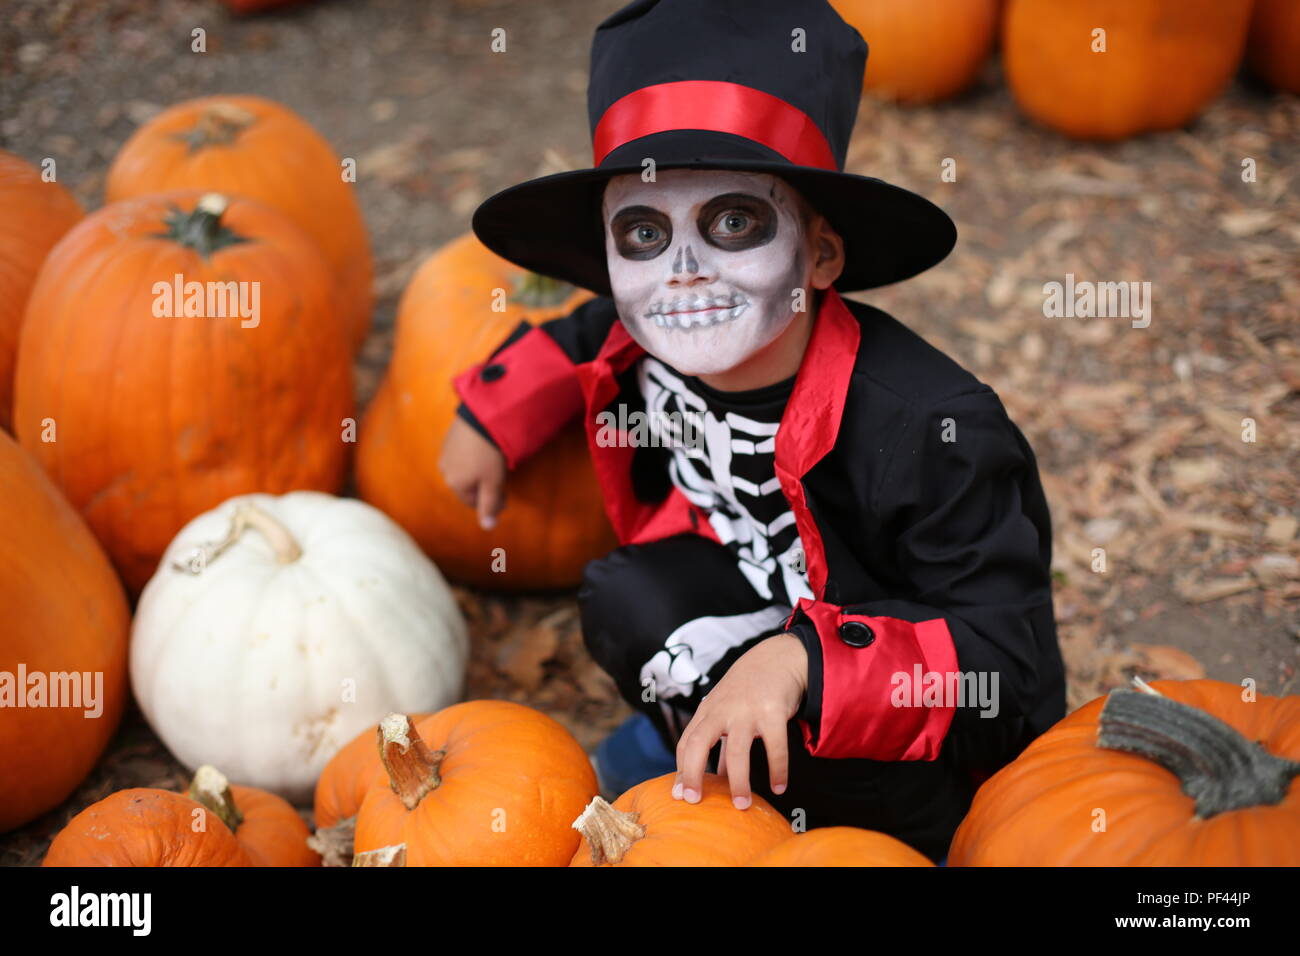 Trick or treat. Boy in a Halloween costume of skeleton with hat and smocking between orange pumpkins - Stock Image